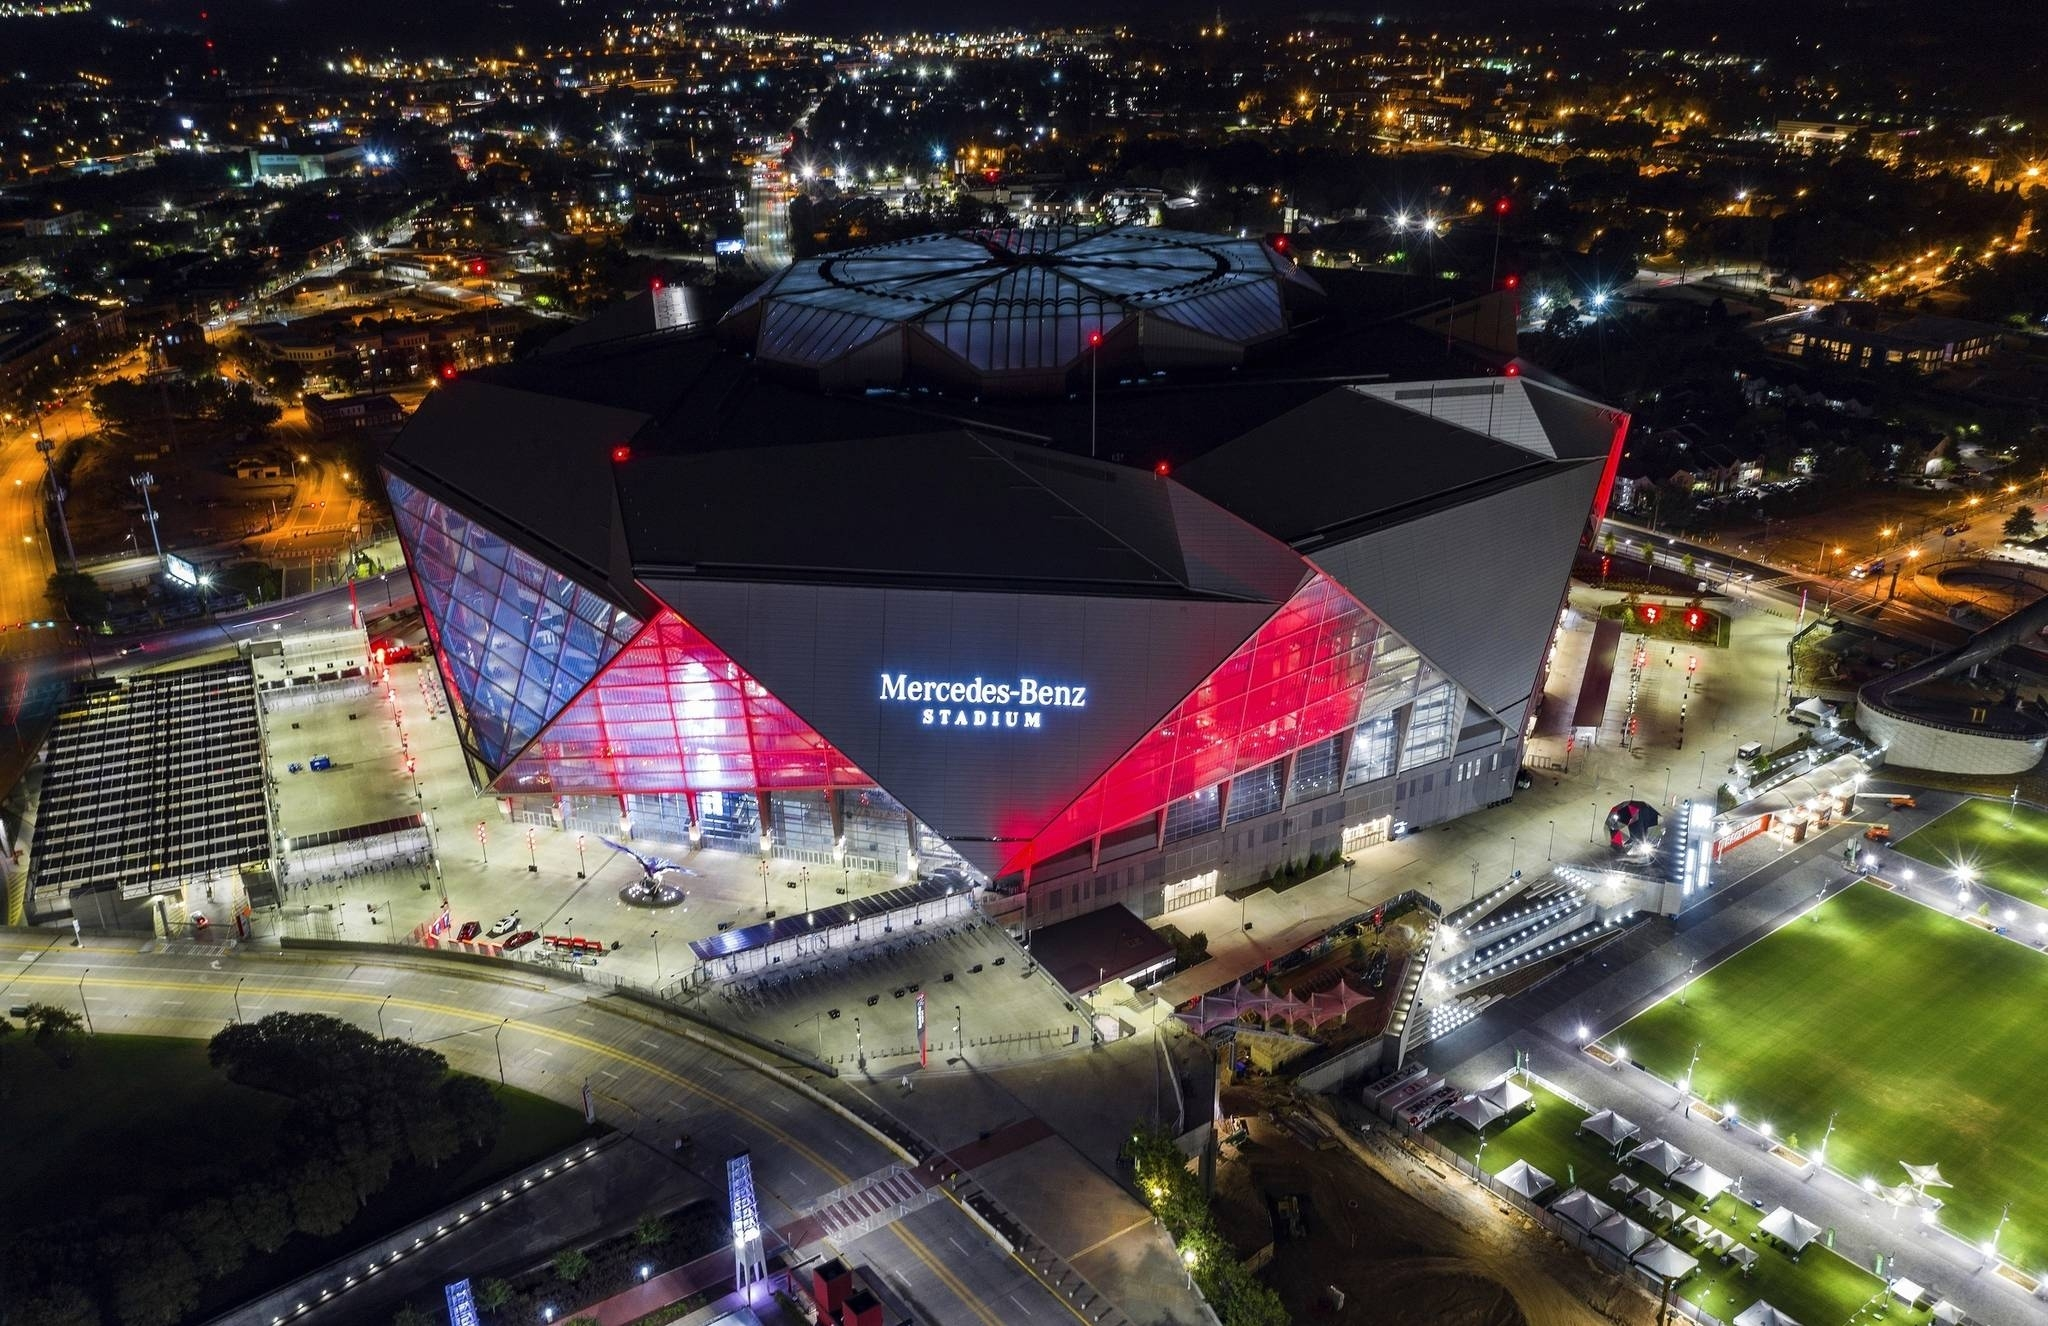 Entertainers Address Social Injustice Issues At Super Bowl with regard to Super Bowl 2019 Stadium Address